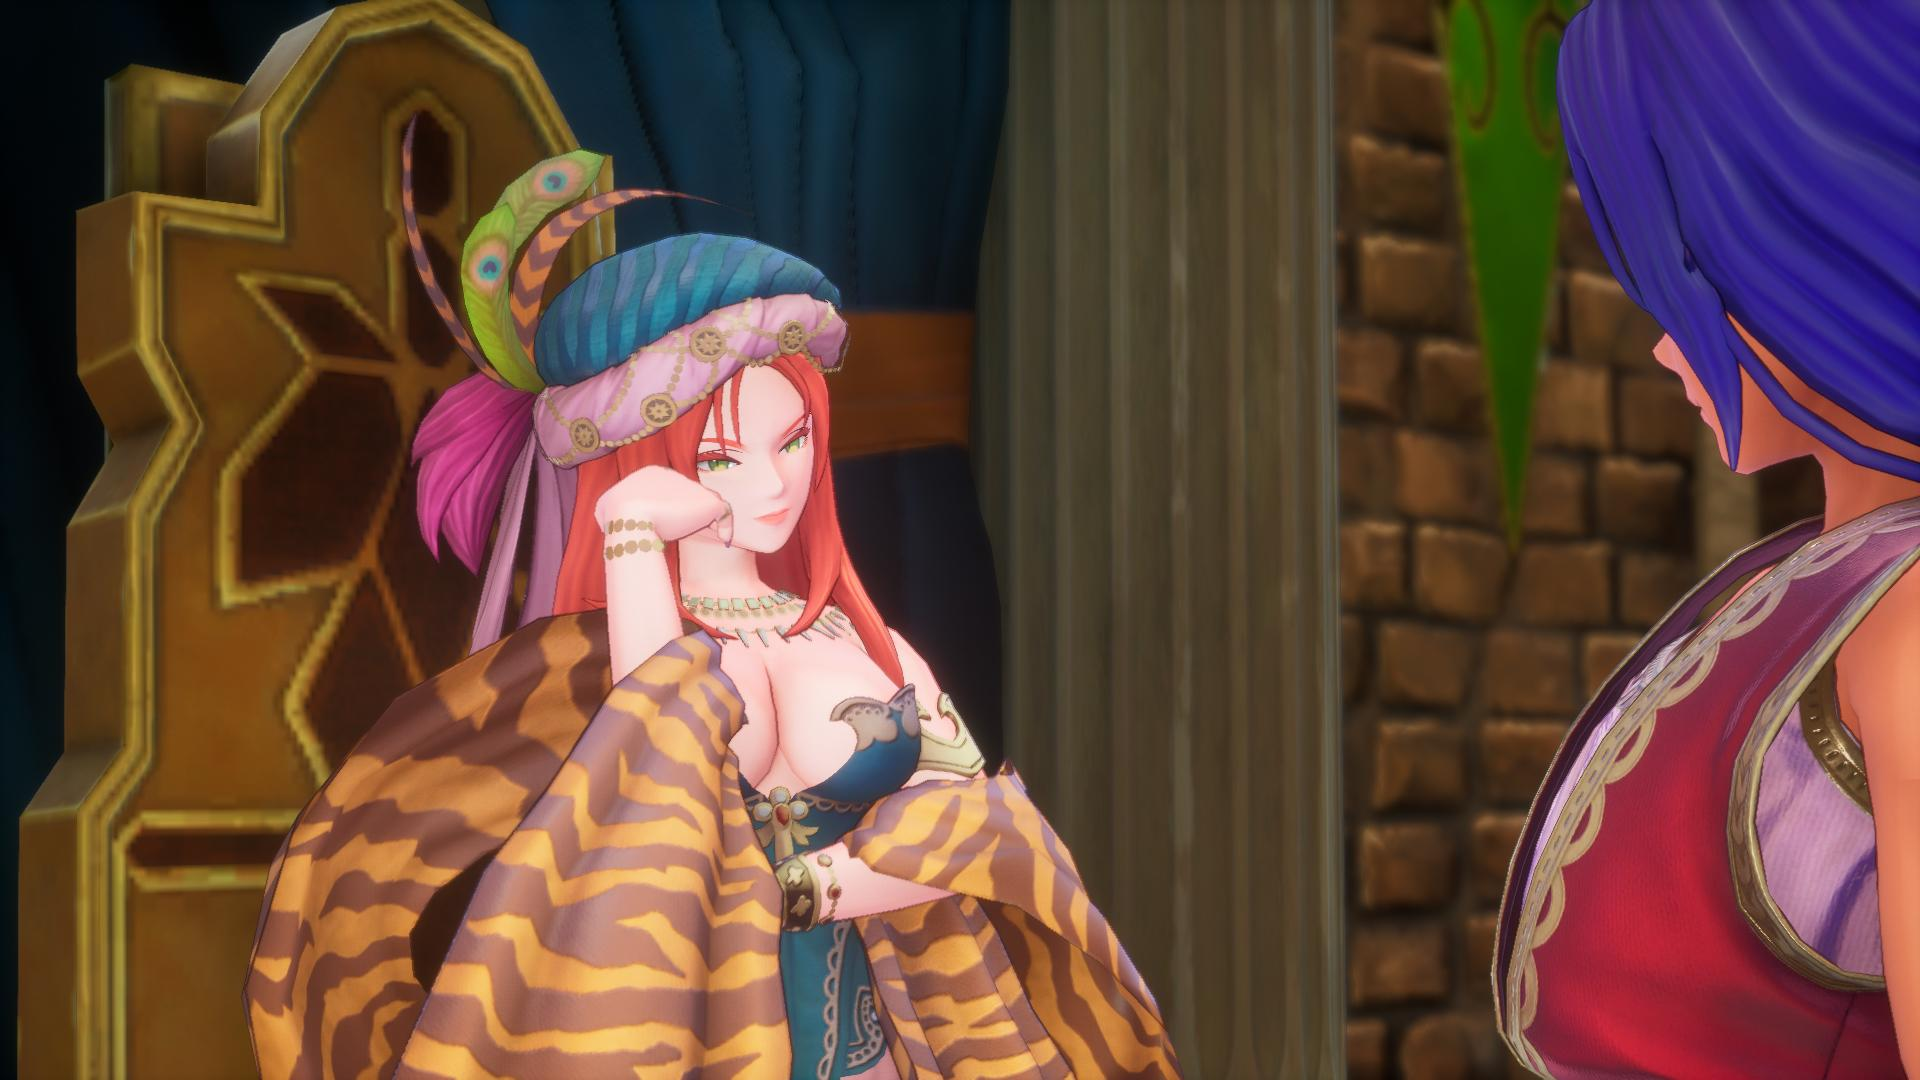 Trials of Mana: Svelata la data d'uscita